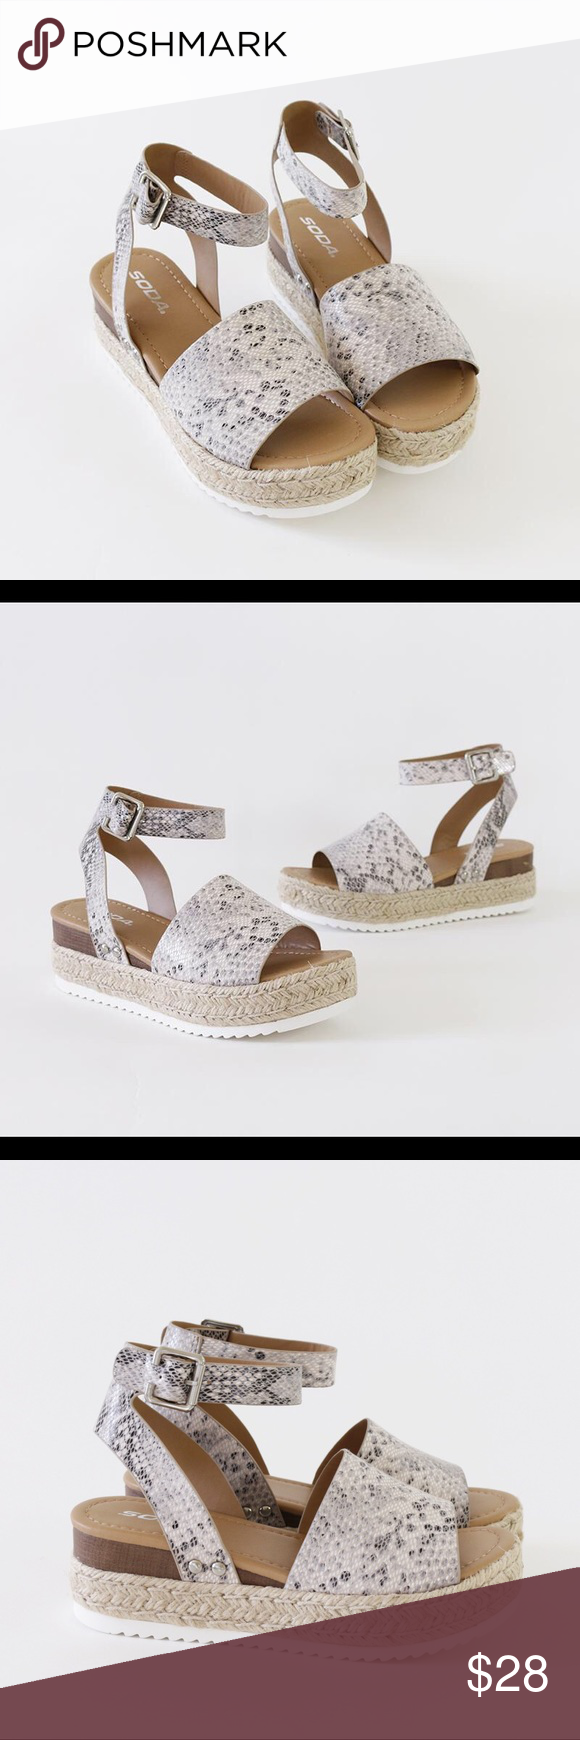 1ff3f15550eb topic python ankles-trap sandal espadrilles Style   Flatform Espadrilles  Heel Height   2 1